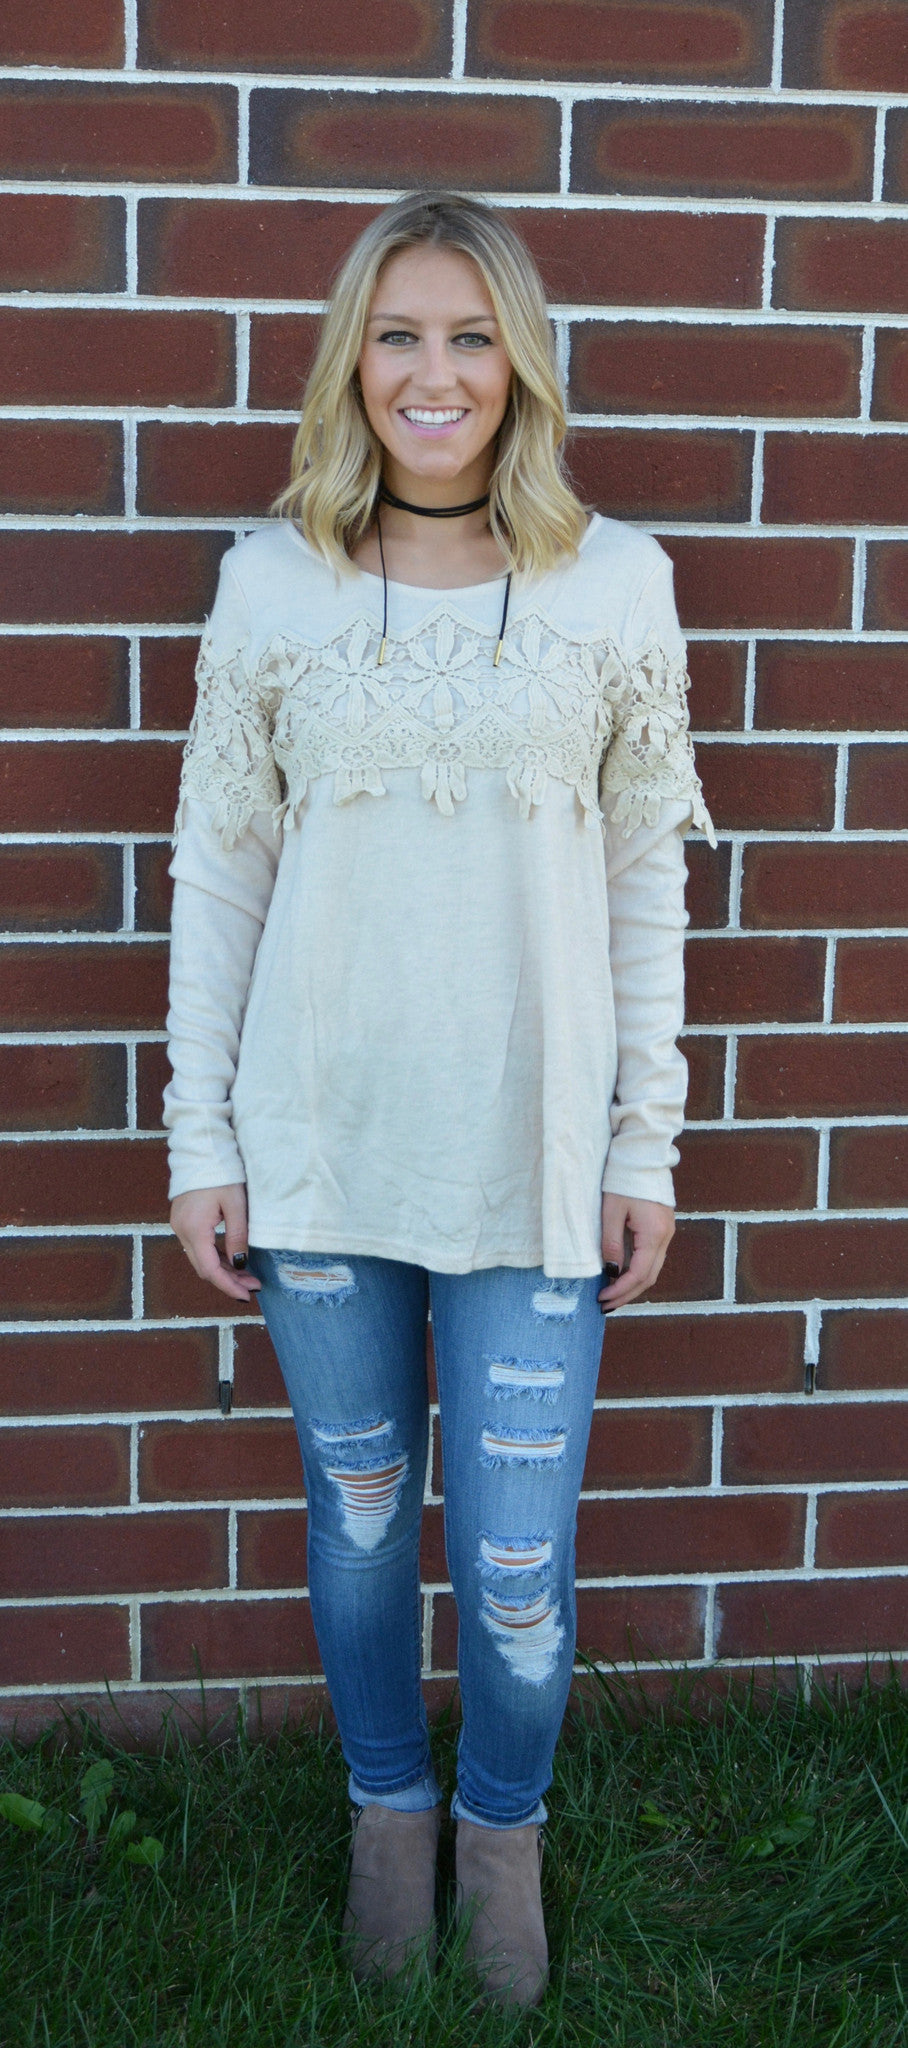 LACE TRIMMED SWEATER - Cream